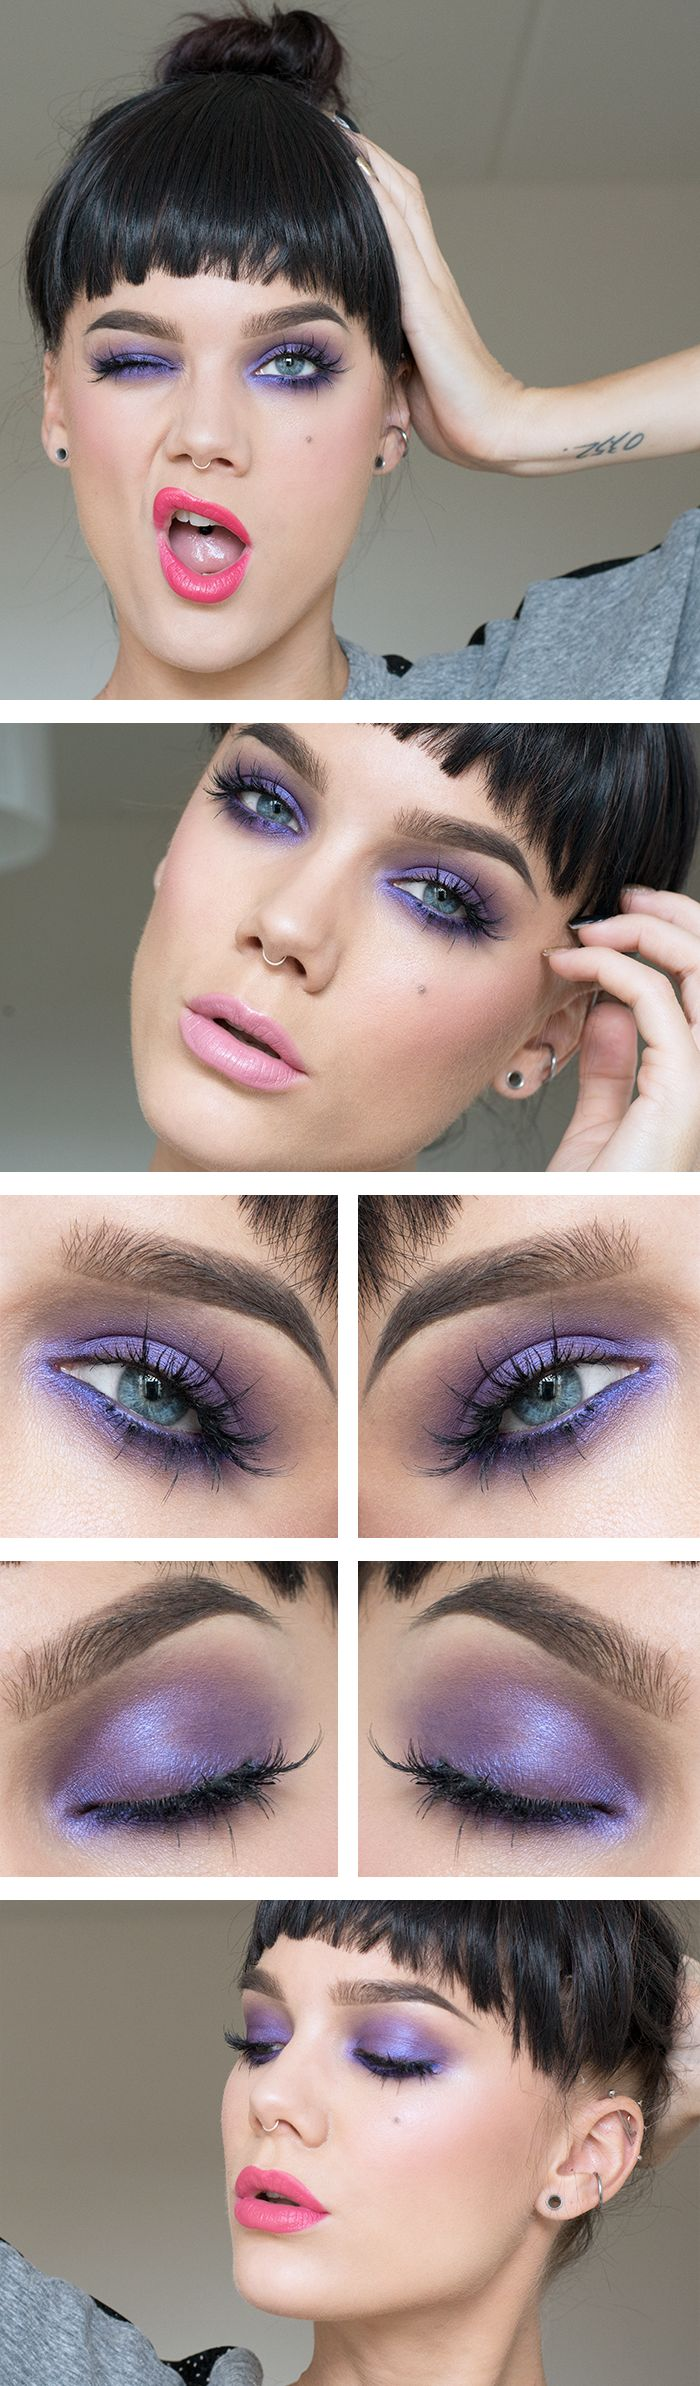 Todays look – Pretty Violet